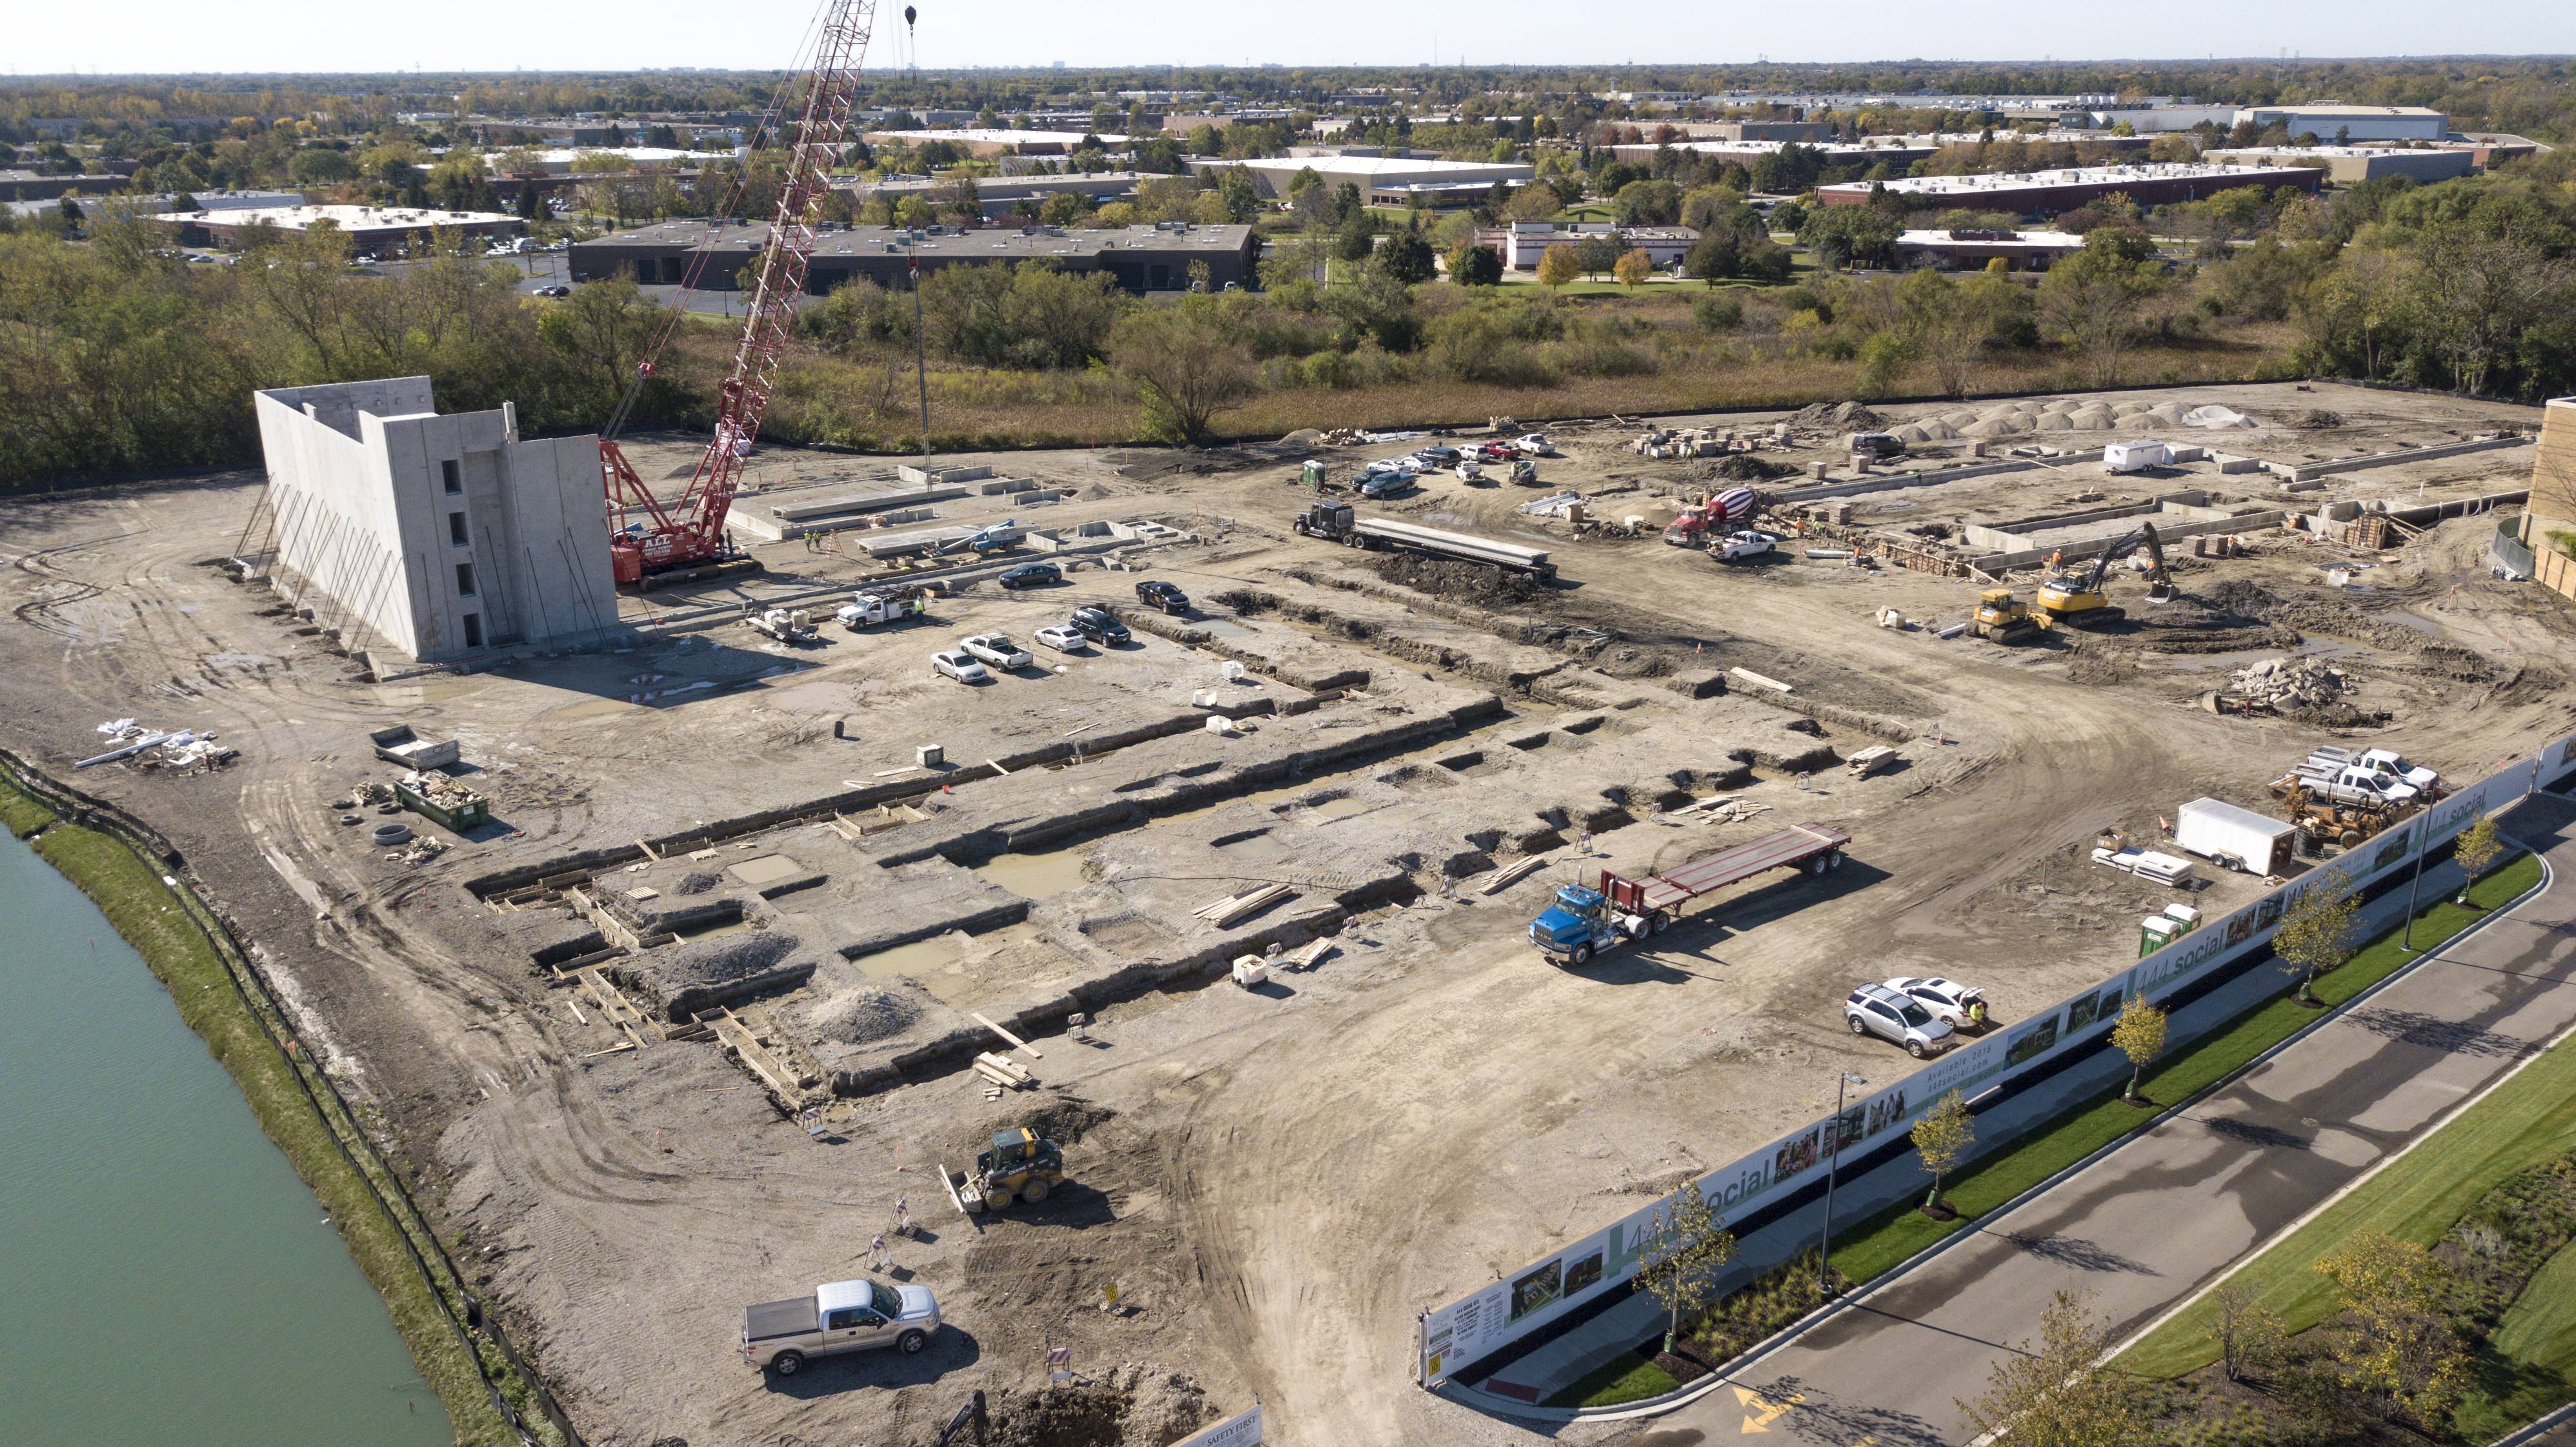 This Daily Herald drone photo shows the first apartment development in Lincolnshire. The development is near the site of the Regal Cinemas.